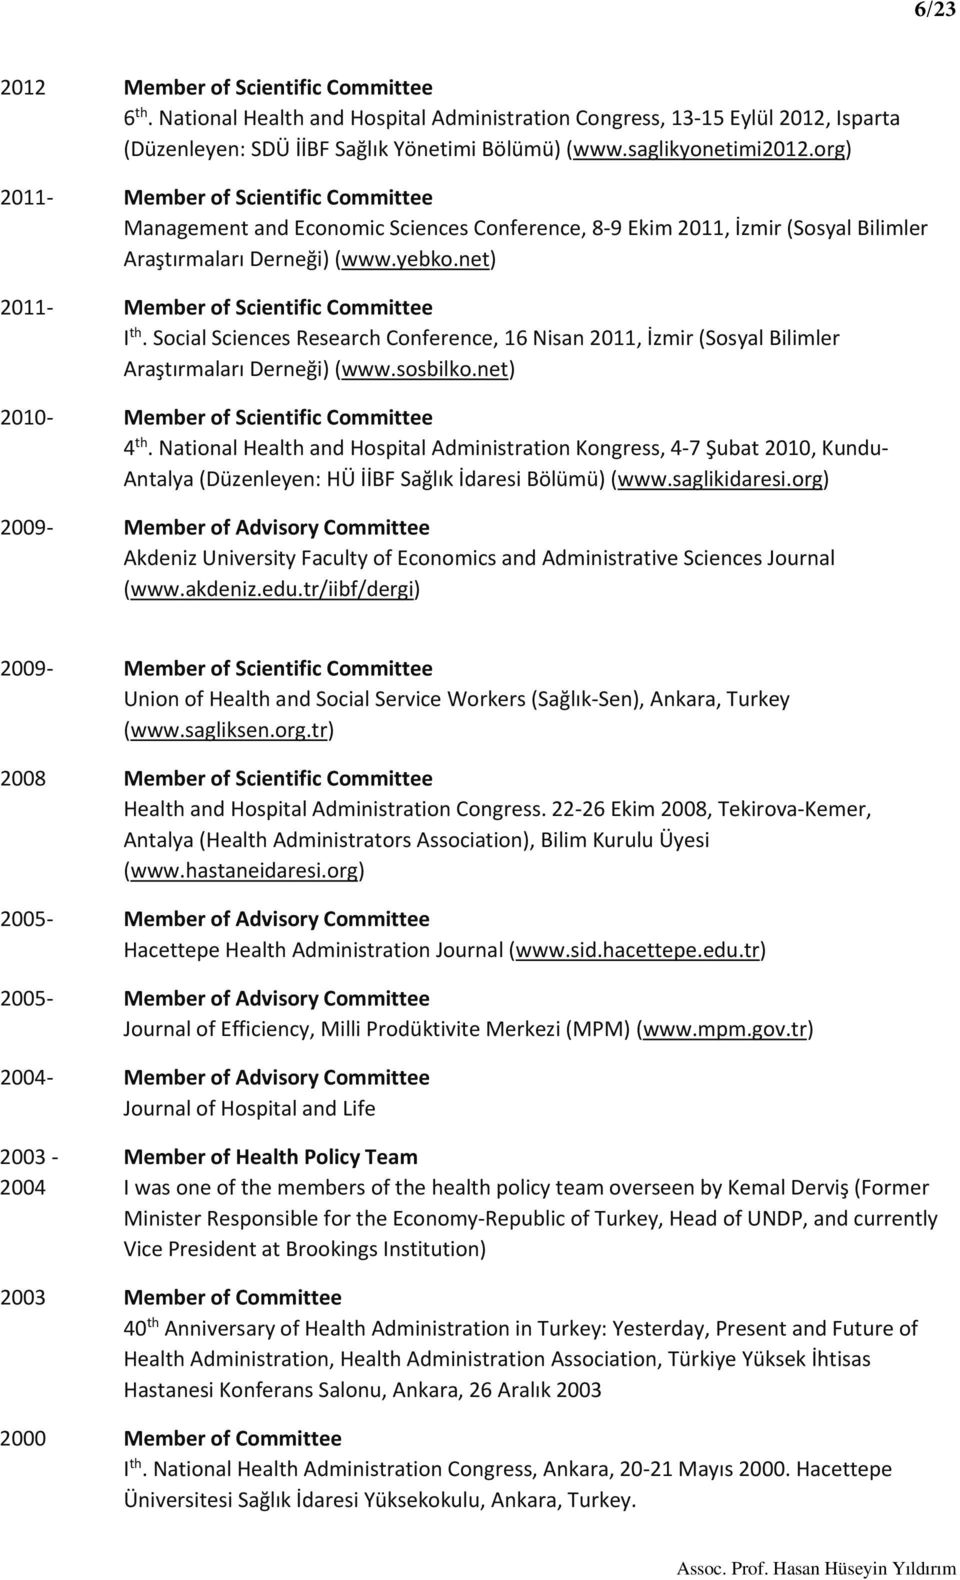 net) 2011 Member of Scientific Committee I th. Social Sciences Research Conference, 16 Nisan 2011, İzmir (Sosyal Bilimler Araştırmaları Derneği) (www.sosbilko.